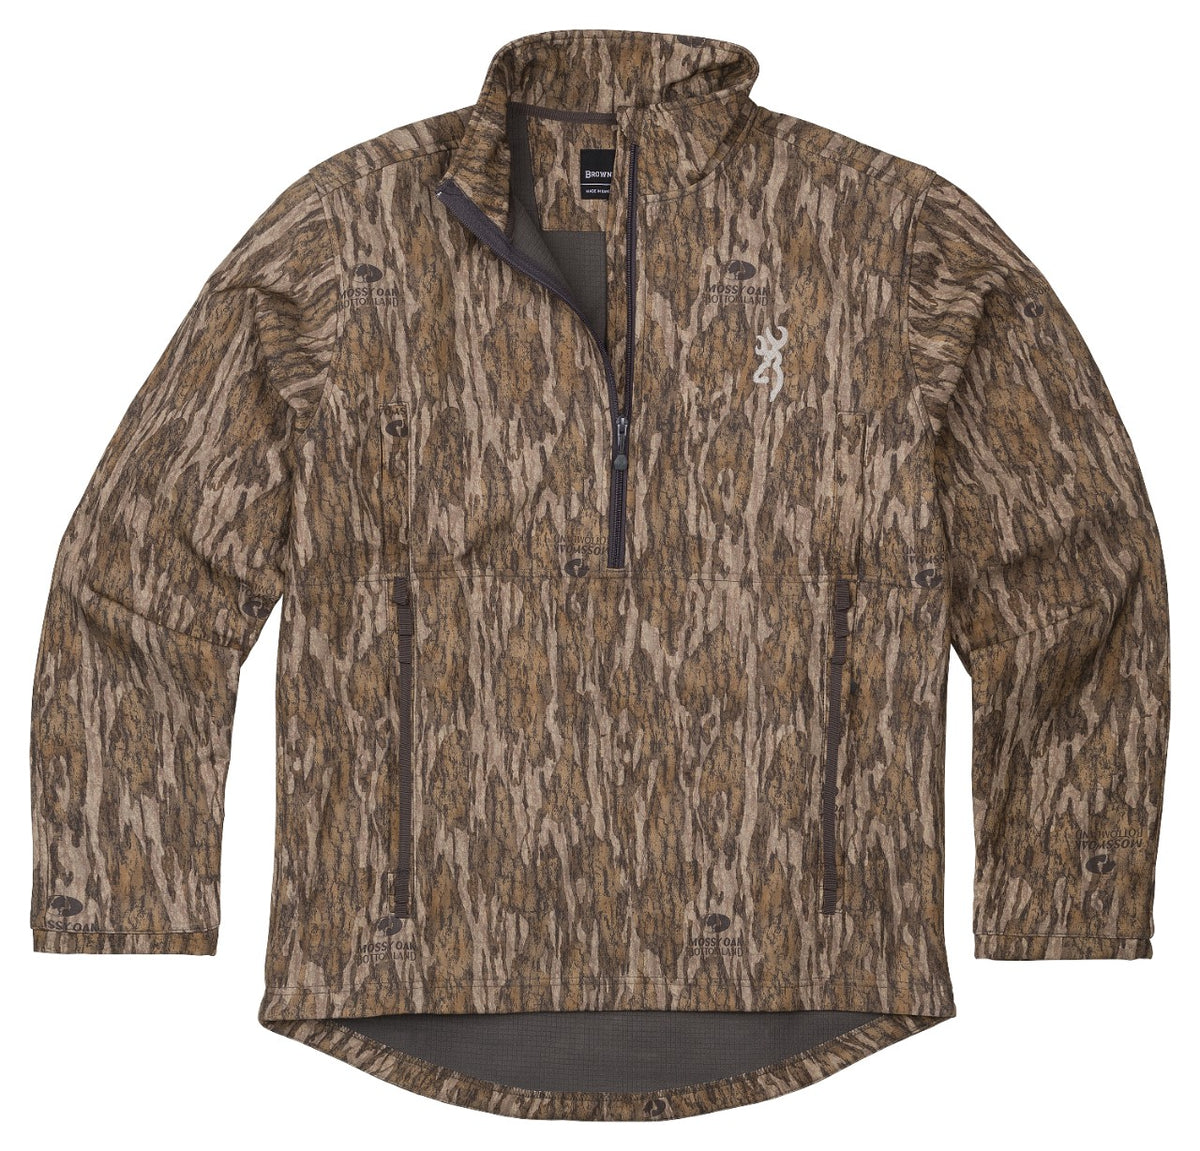 1/4 ZIP,WW,SMOOTHBORE,MOBL,XL